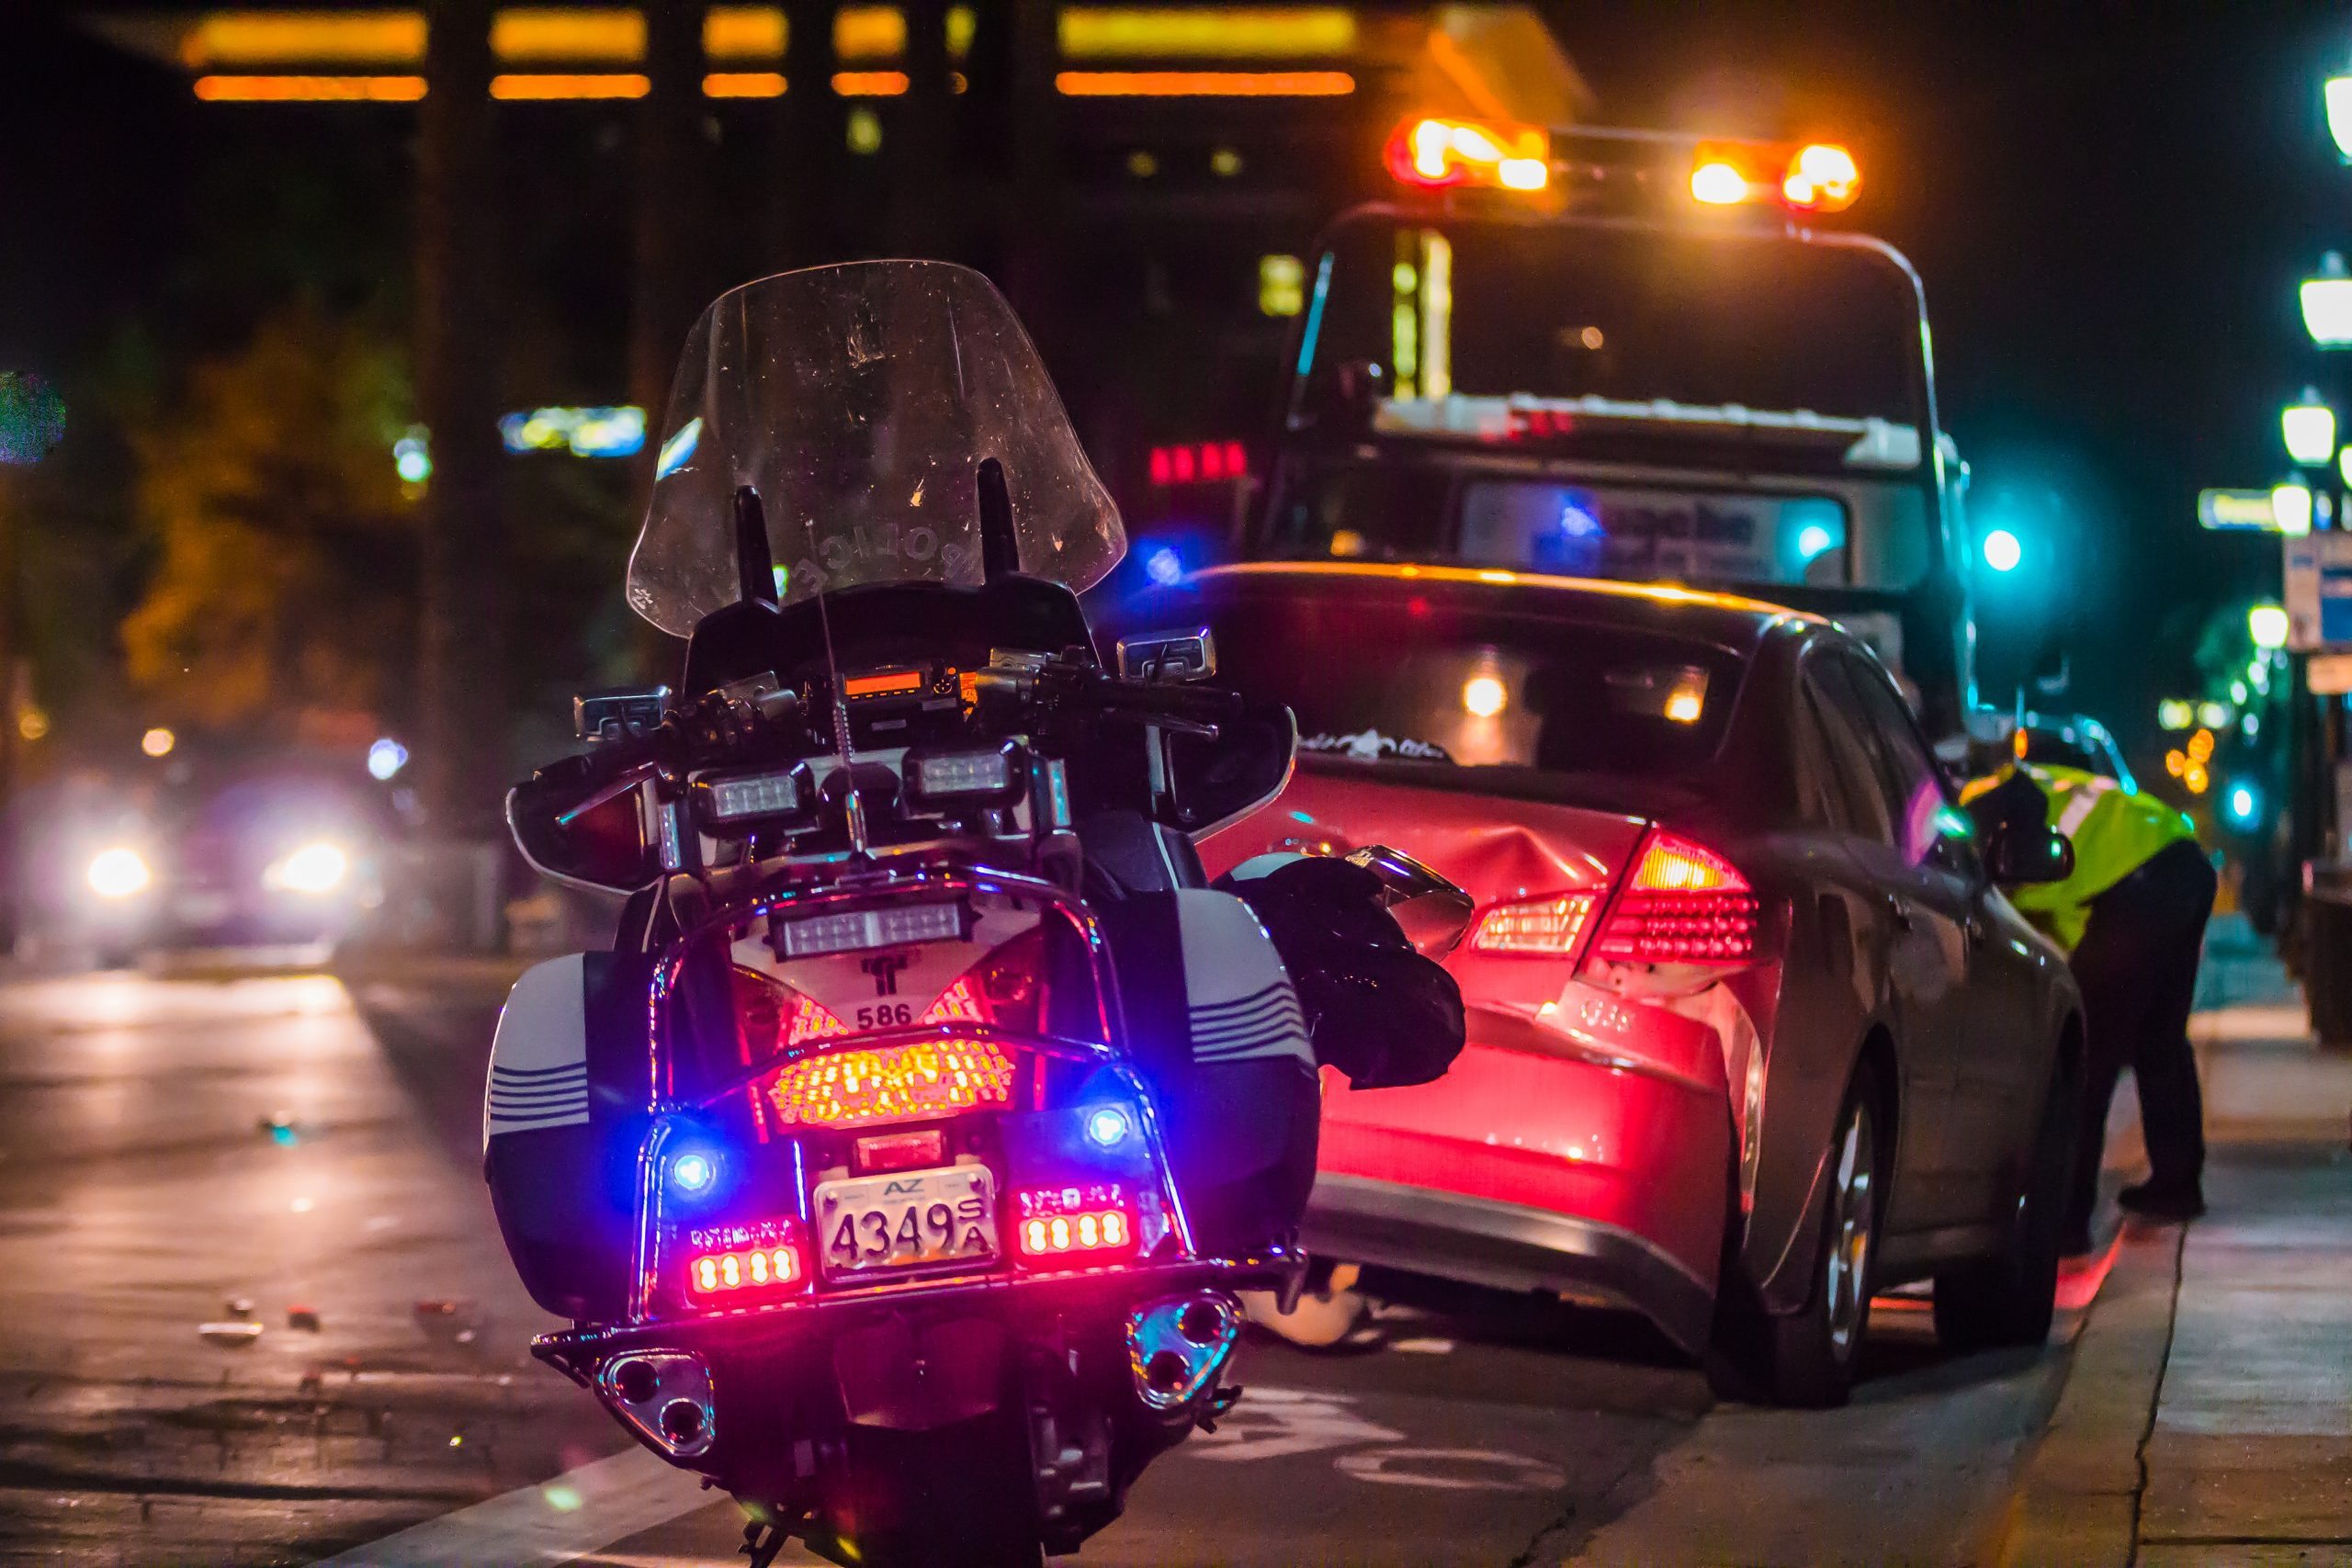 Can you sue when a road defect cause a motorcycle accident?